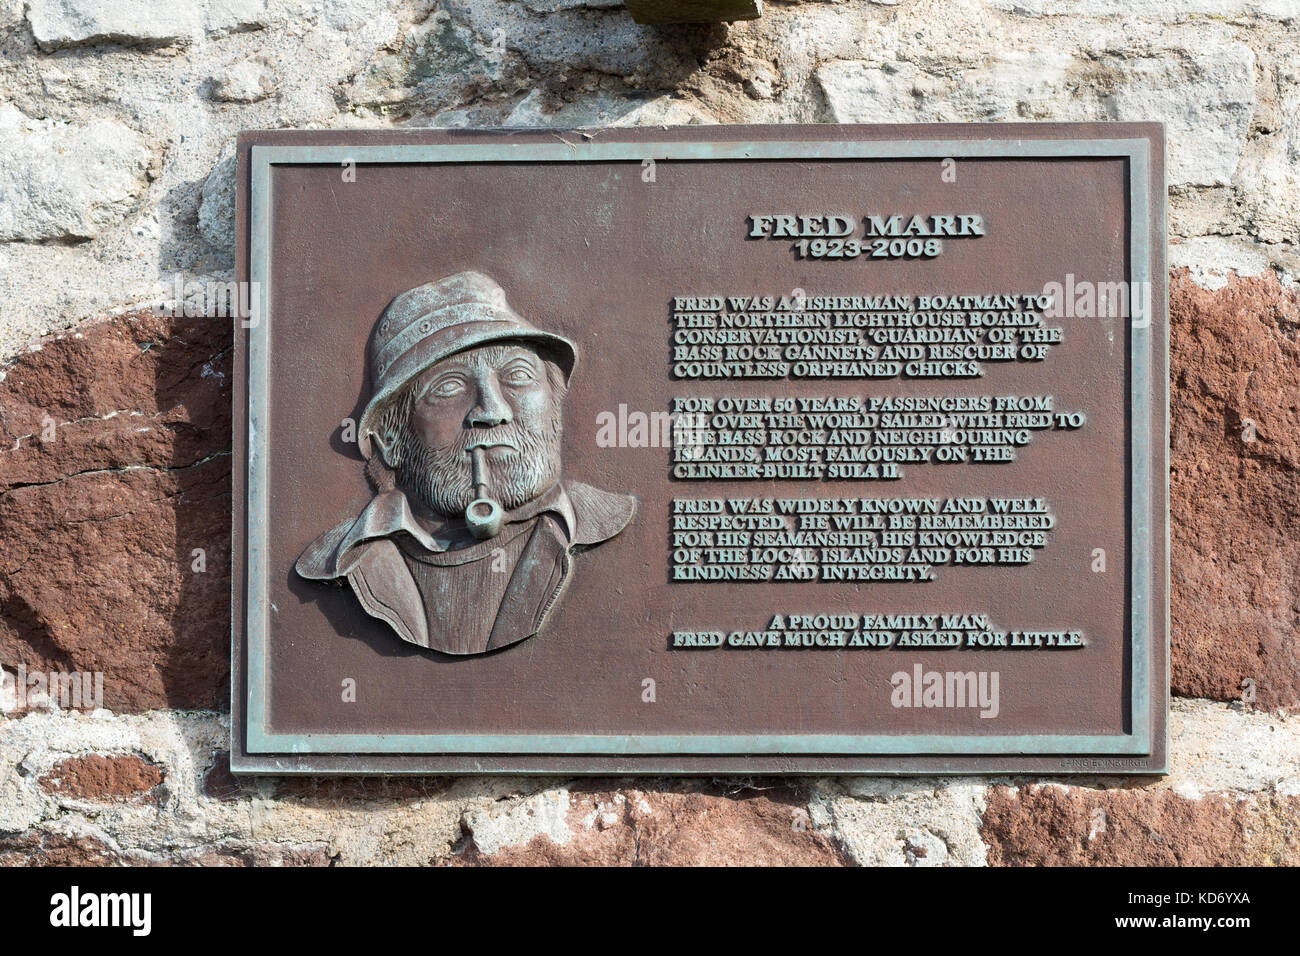 Memorial plaque for local fisherman Fred Marr North Berwick harbour, East Lothian, Scotland, UK - Stock Image